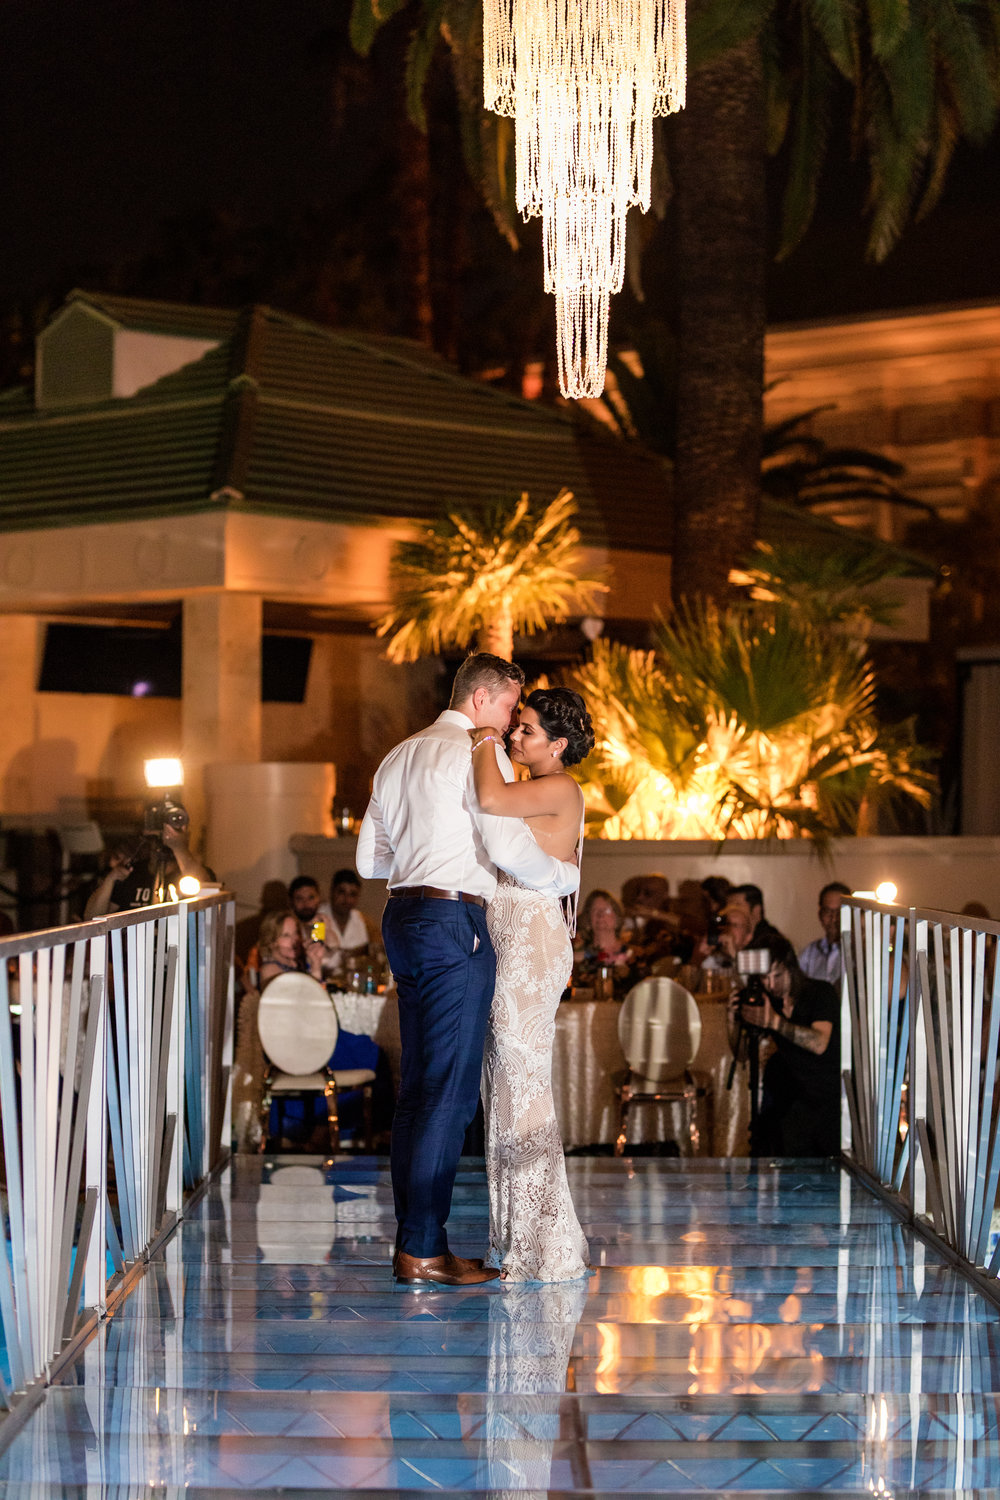 First dance on bridge over pool. Jewel toned wedding centerpieces with gold accents. Wedding Planning by  Andrea Eppolito Events   ·  Photography by  Shandro Photo    ·  Wedding Venue  Four Seasons Las Vegas   ·  Floral and Decor by  Destination by Design   ·  Cake by  Four Seasons Las Vegas   ·  Chandeliers and Lighting by  LED Unplugged   ·  Dress by  Berta   and Menu by Alligator Soup